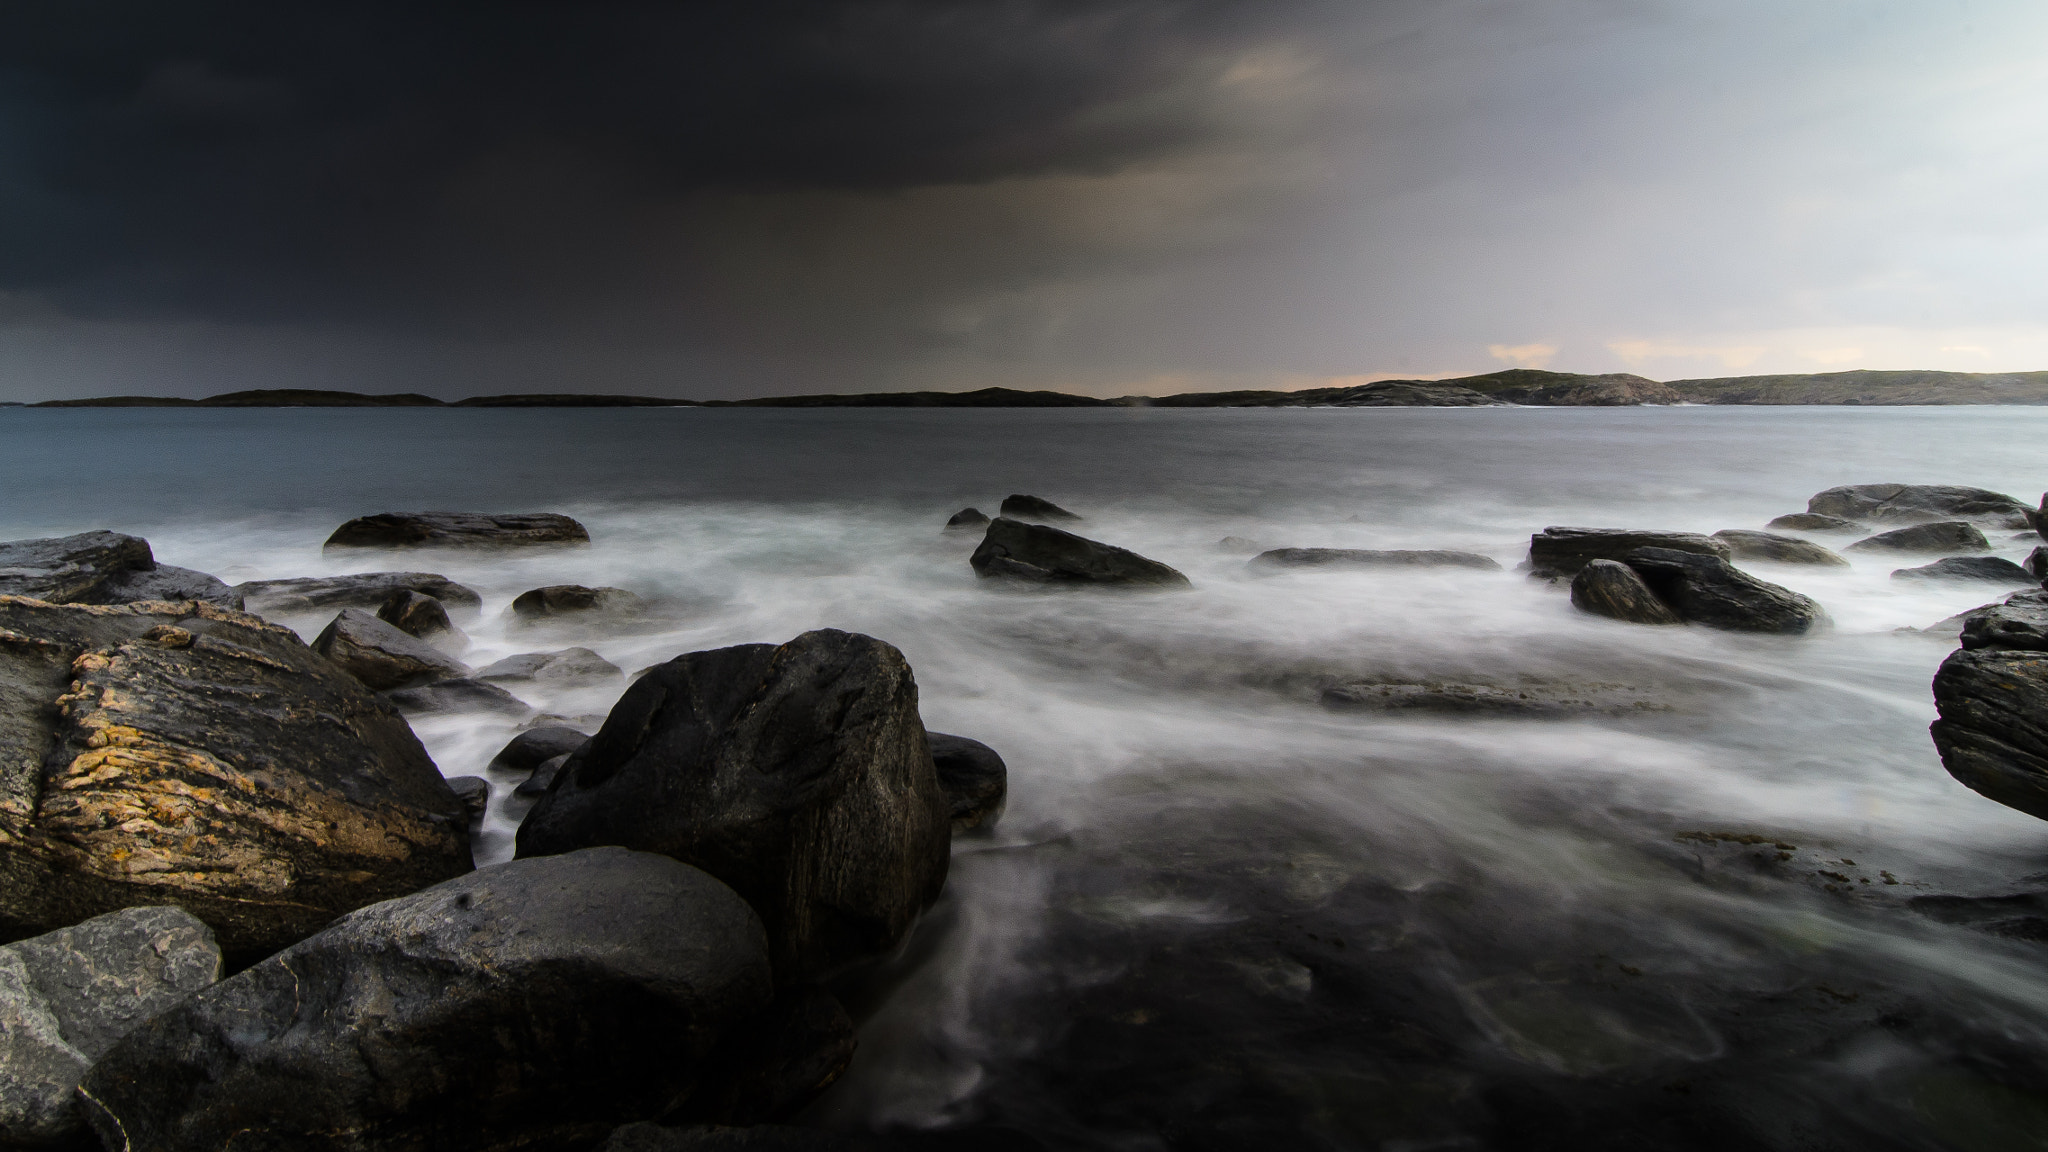 Photograph The Movement Of The Sea by Kolbein Svensson on 500px